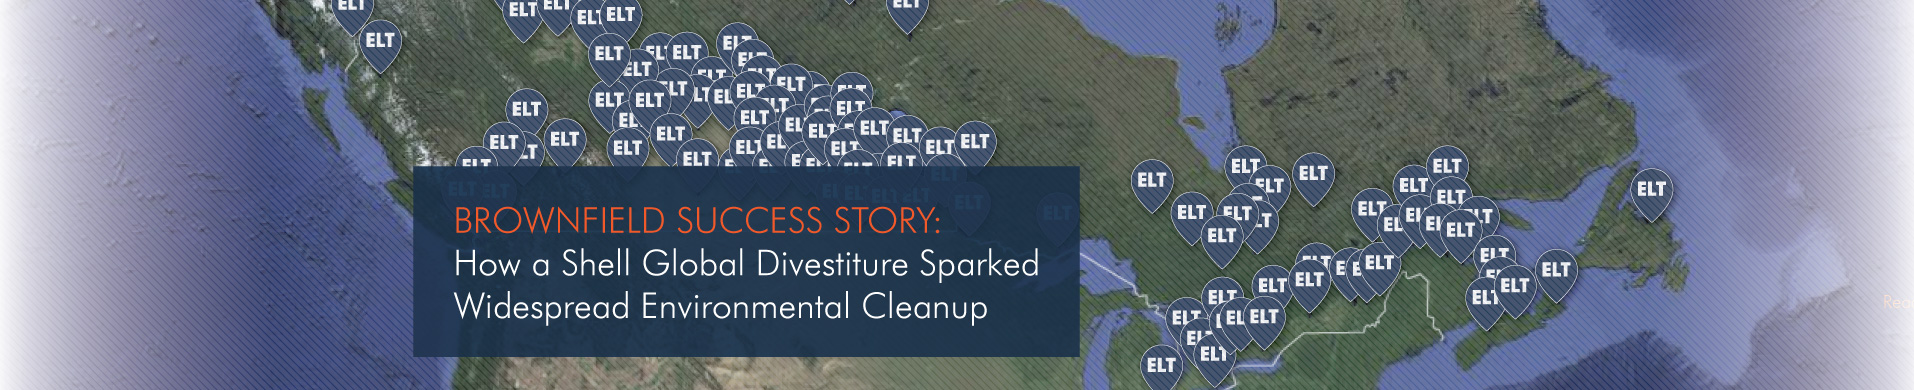 Shell-Global-Divestiture-Sparks-Environmental-Cleanup